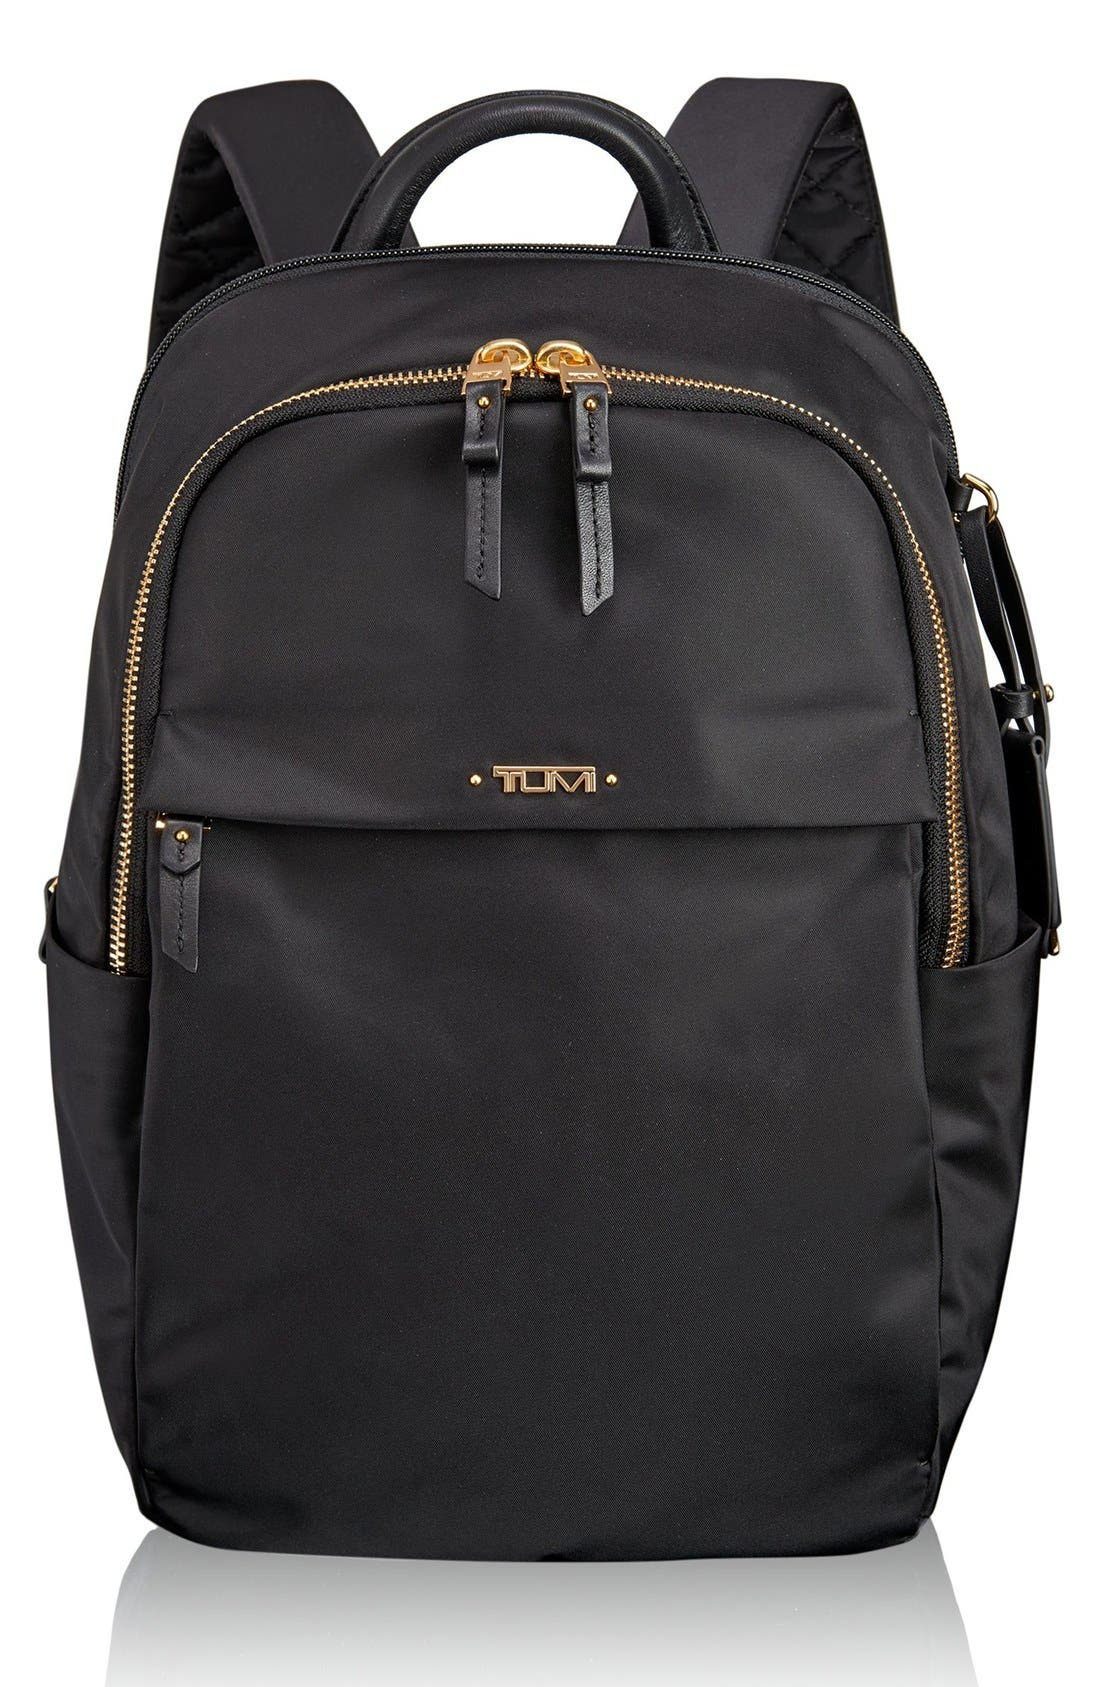 TUMI,                             Voyageur - Small Daniella Backpack,                             Main thumbnail 1, color,                             001